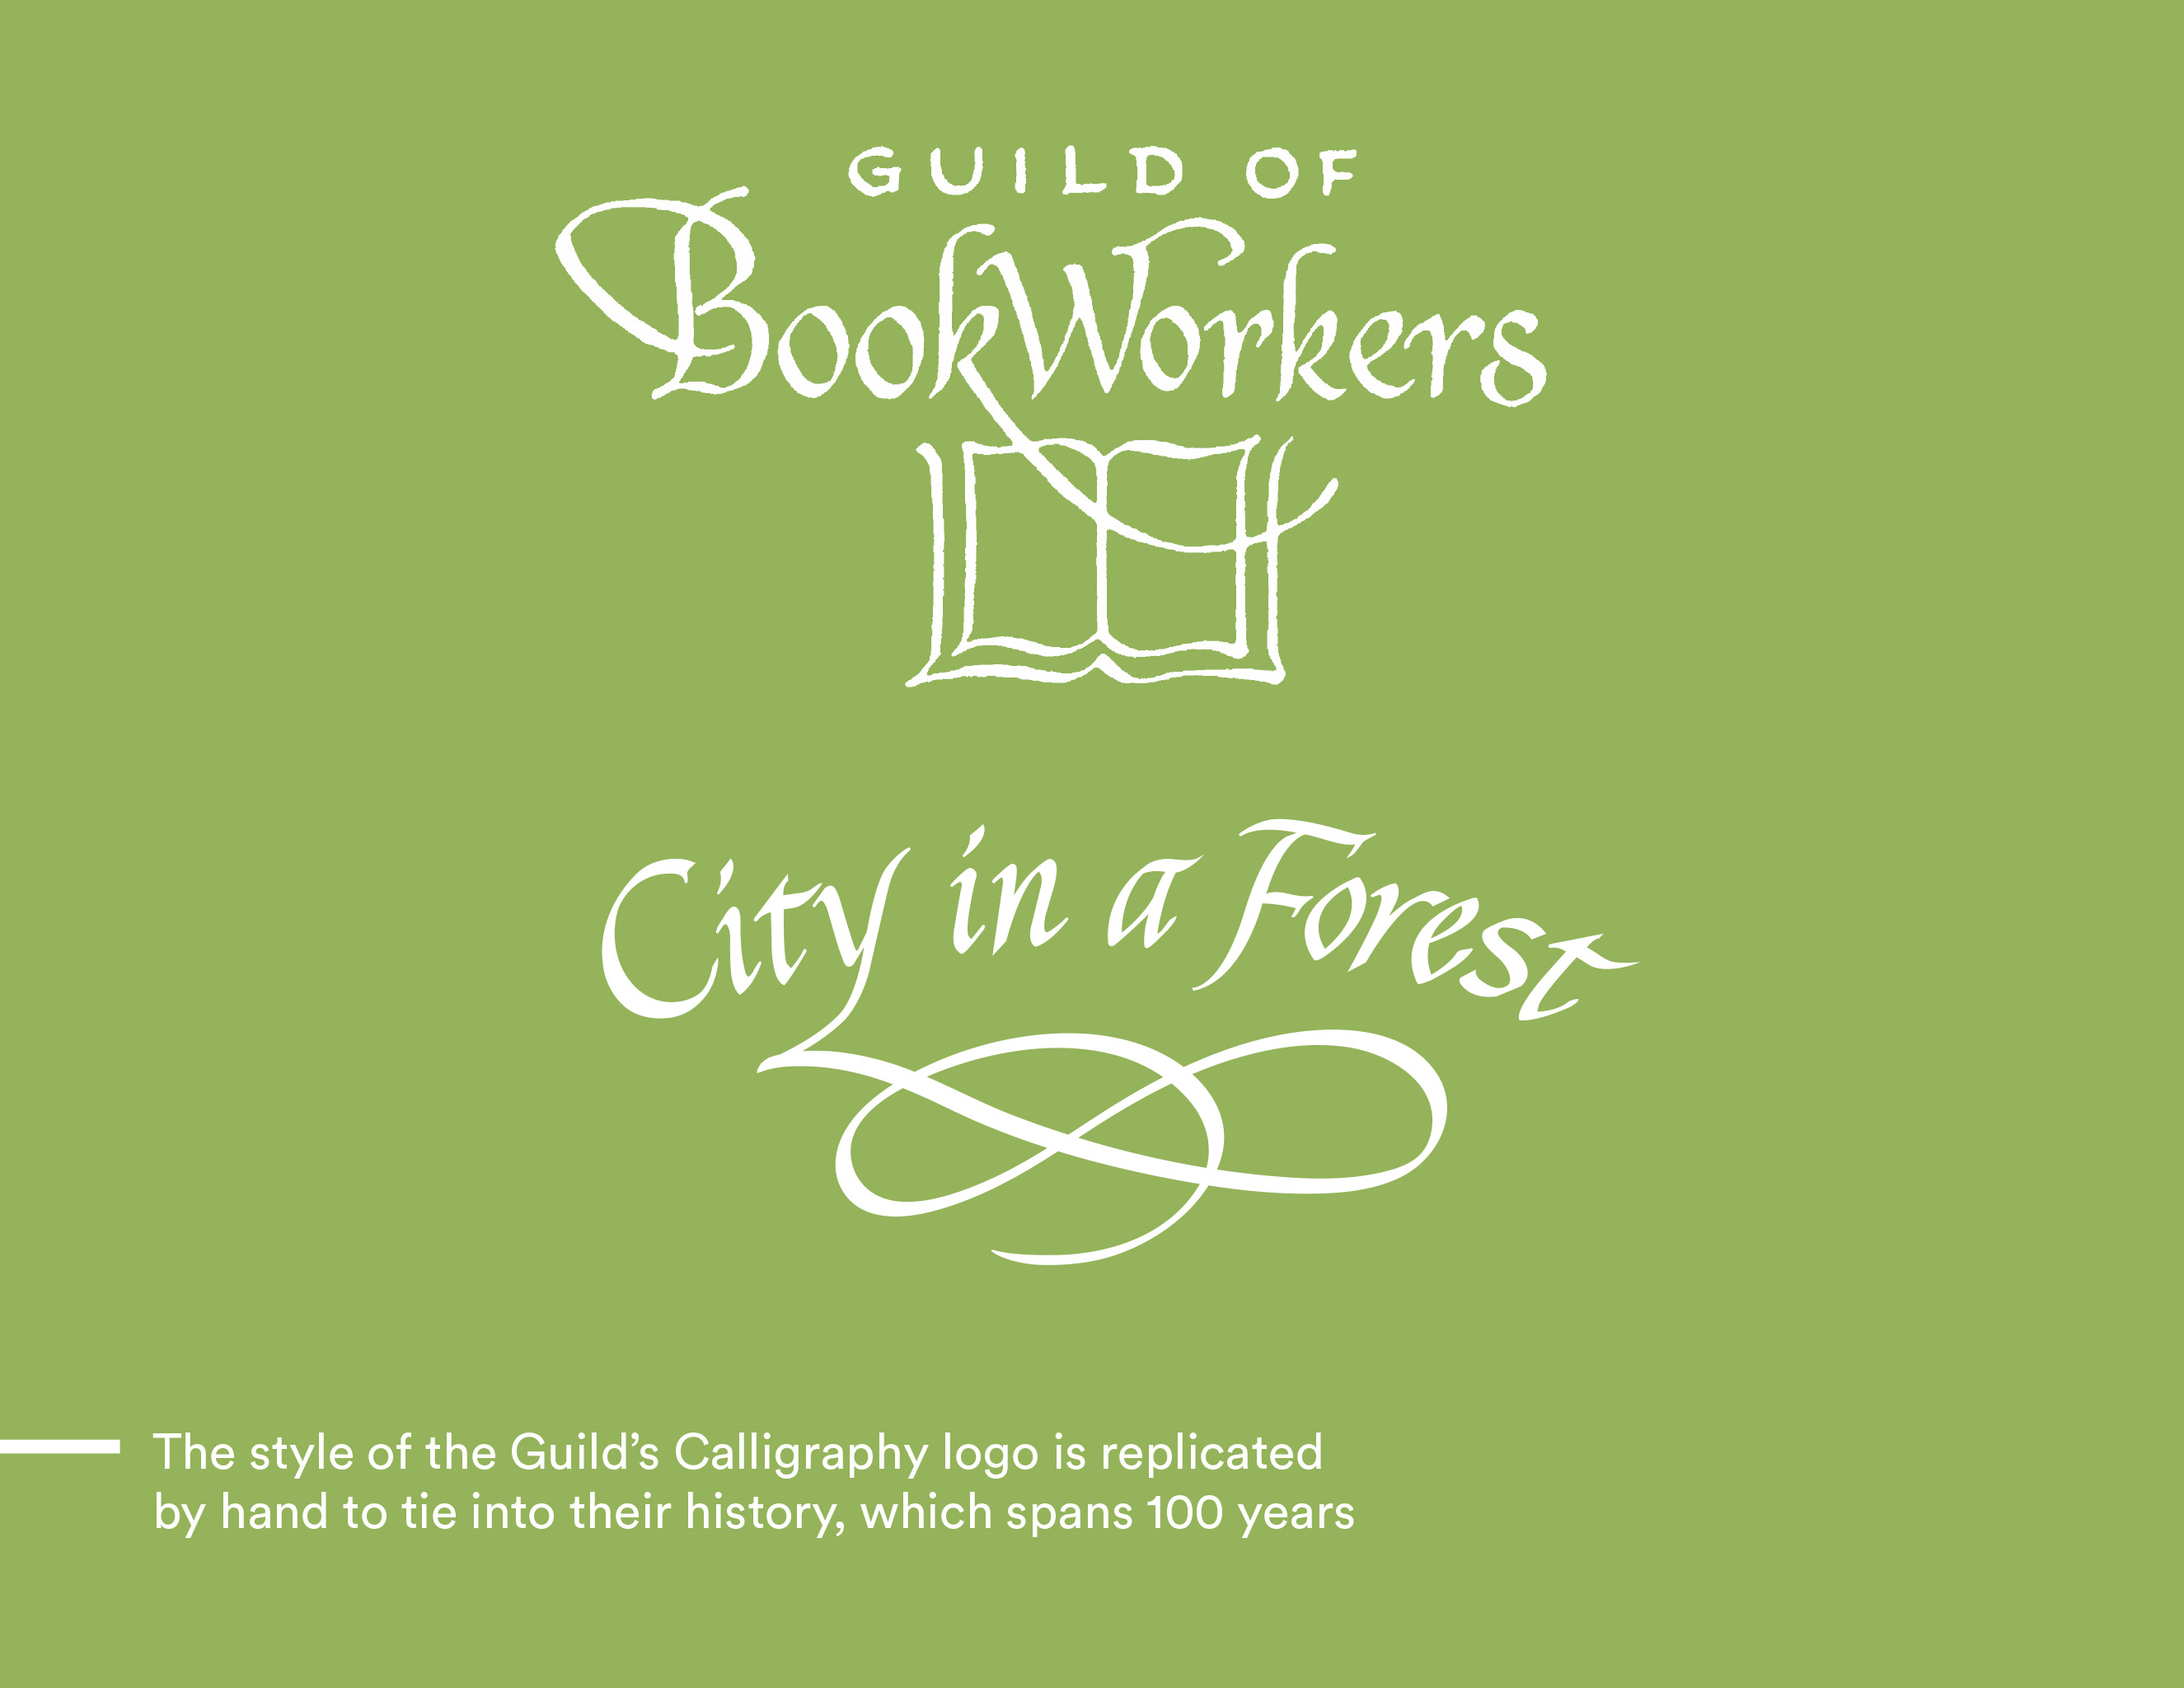 A green background with white calligraphy and flourishes creating a book drawn with scroll-lines. Text reads Guild of Book Workers - City in a Forest.